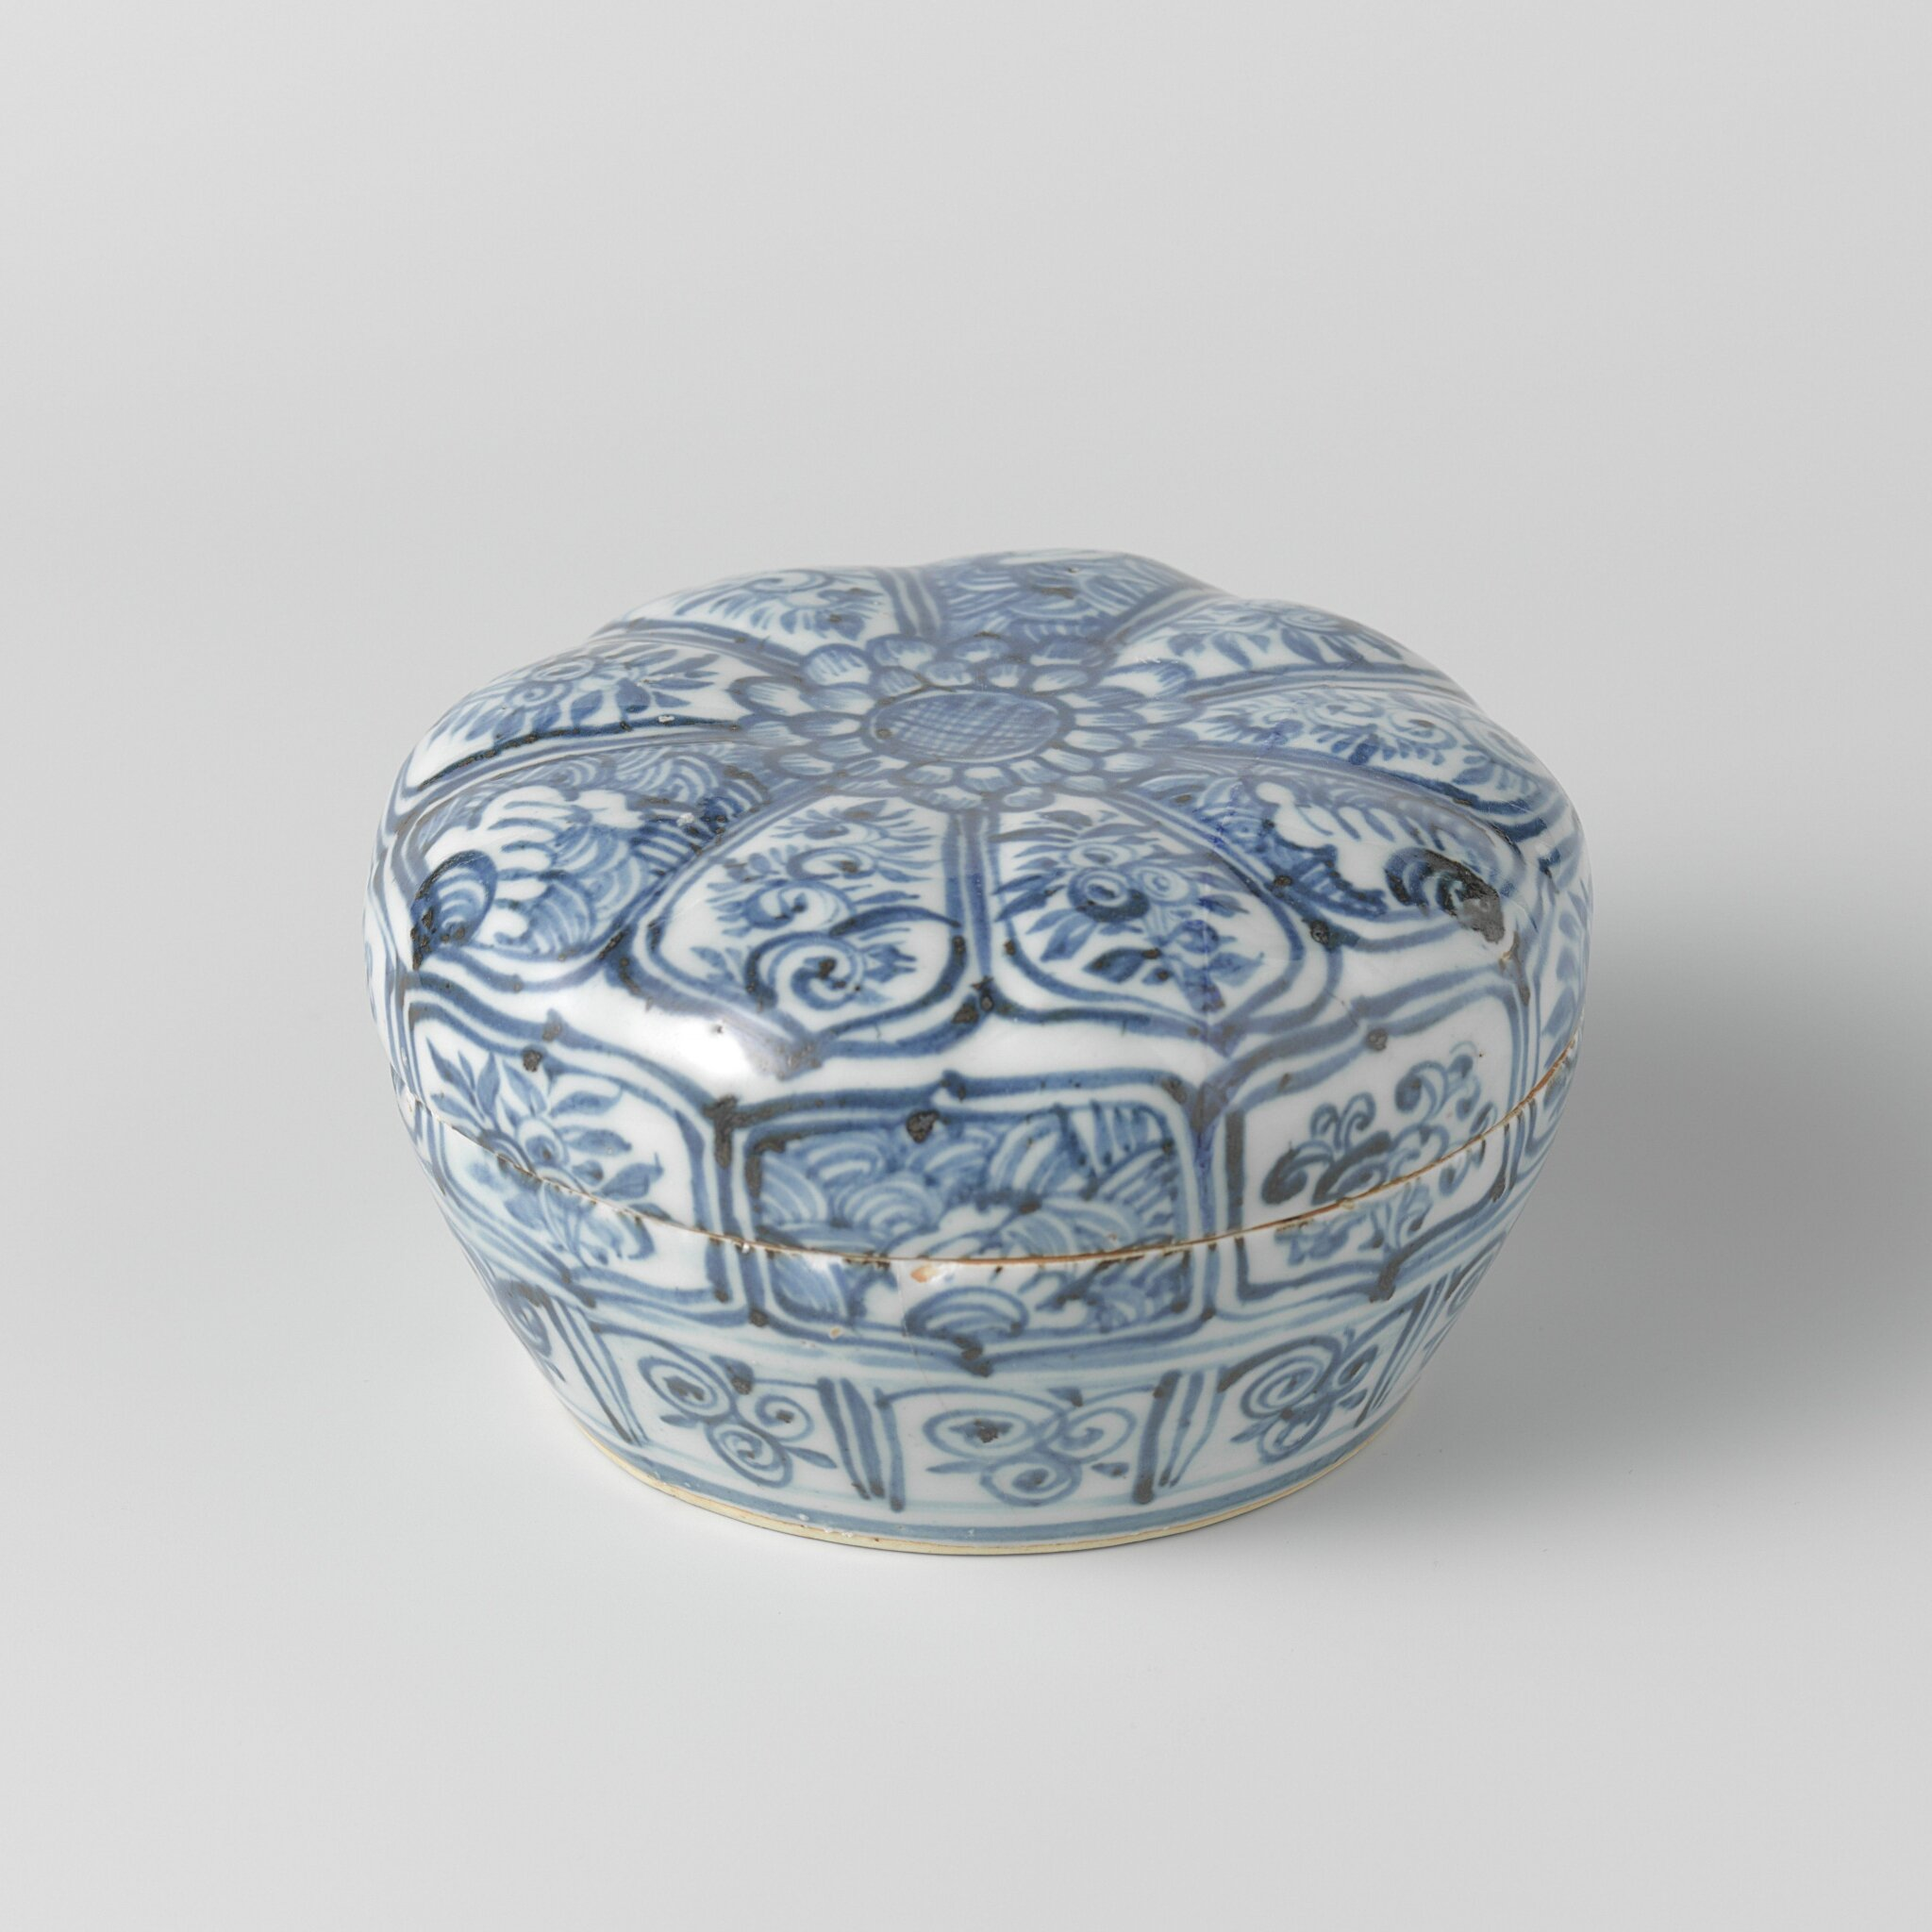 Covered box, Jingtai period, c